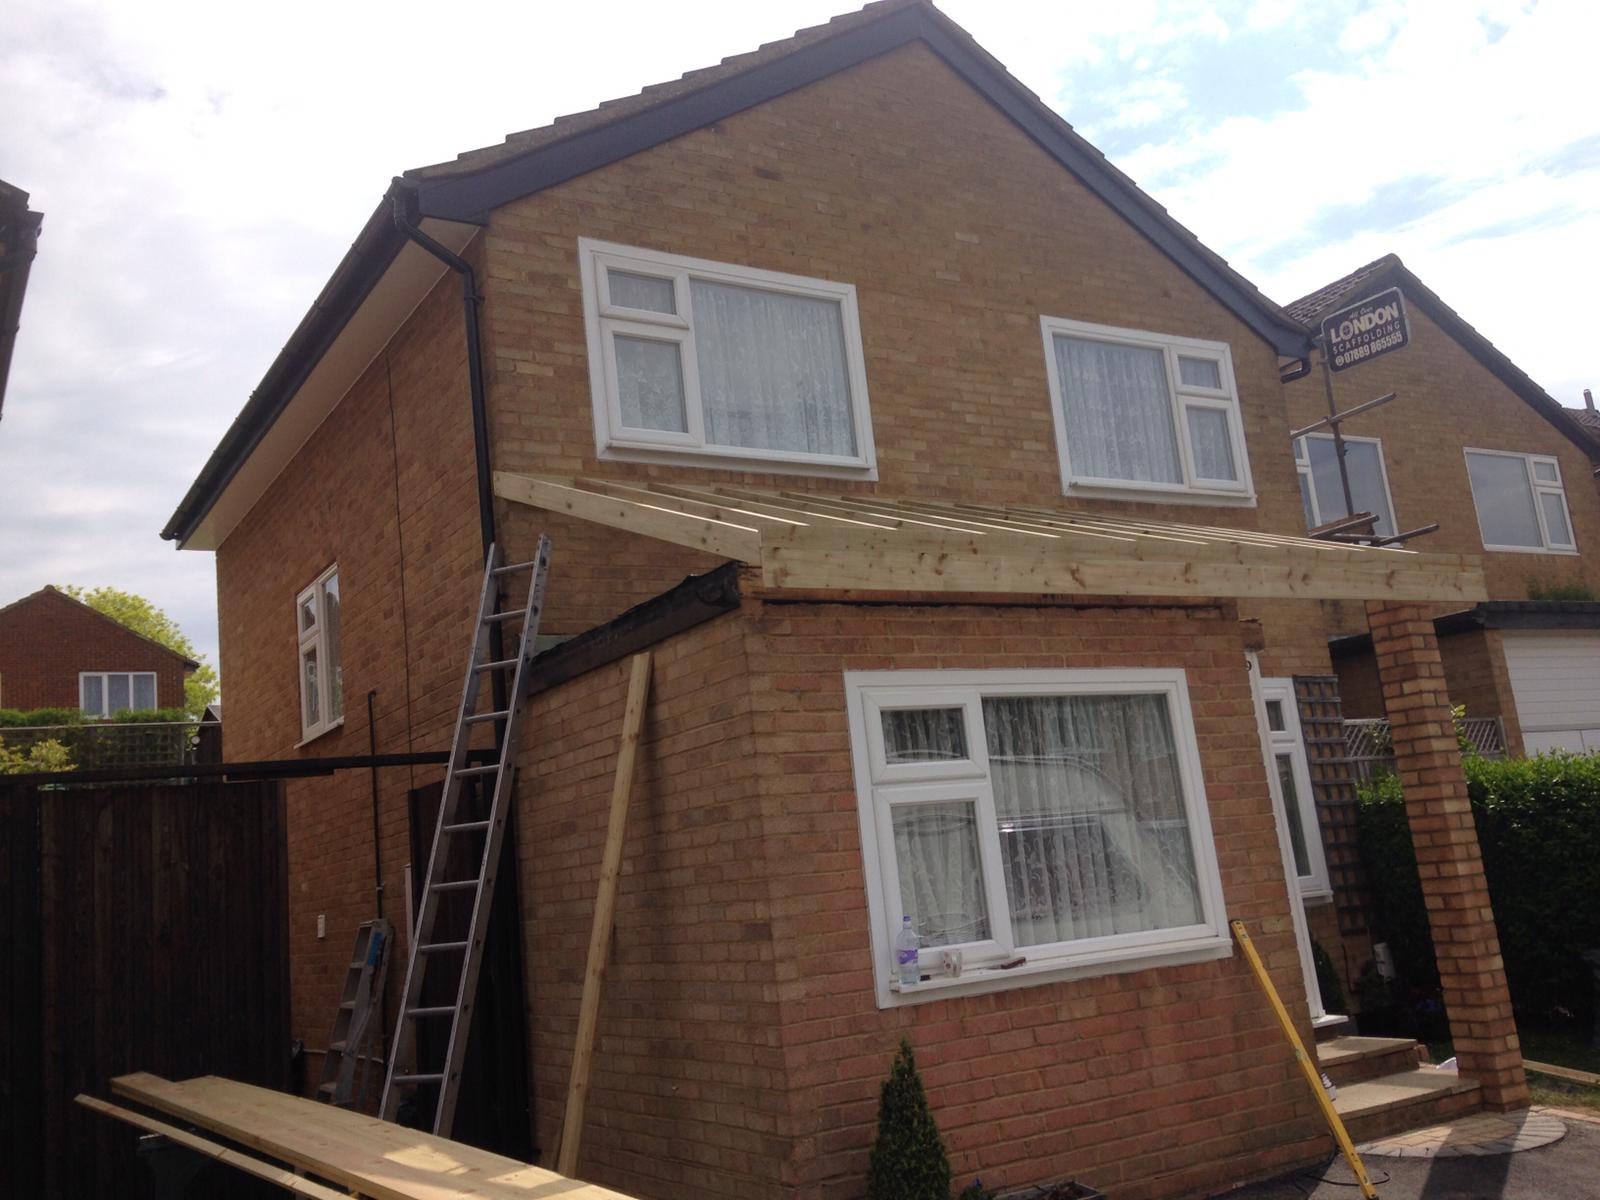 Flat To Pitched Roof Service Roofing Conversions For London Surrey